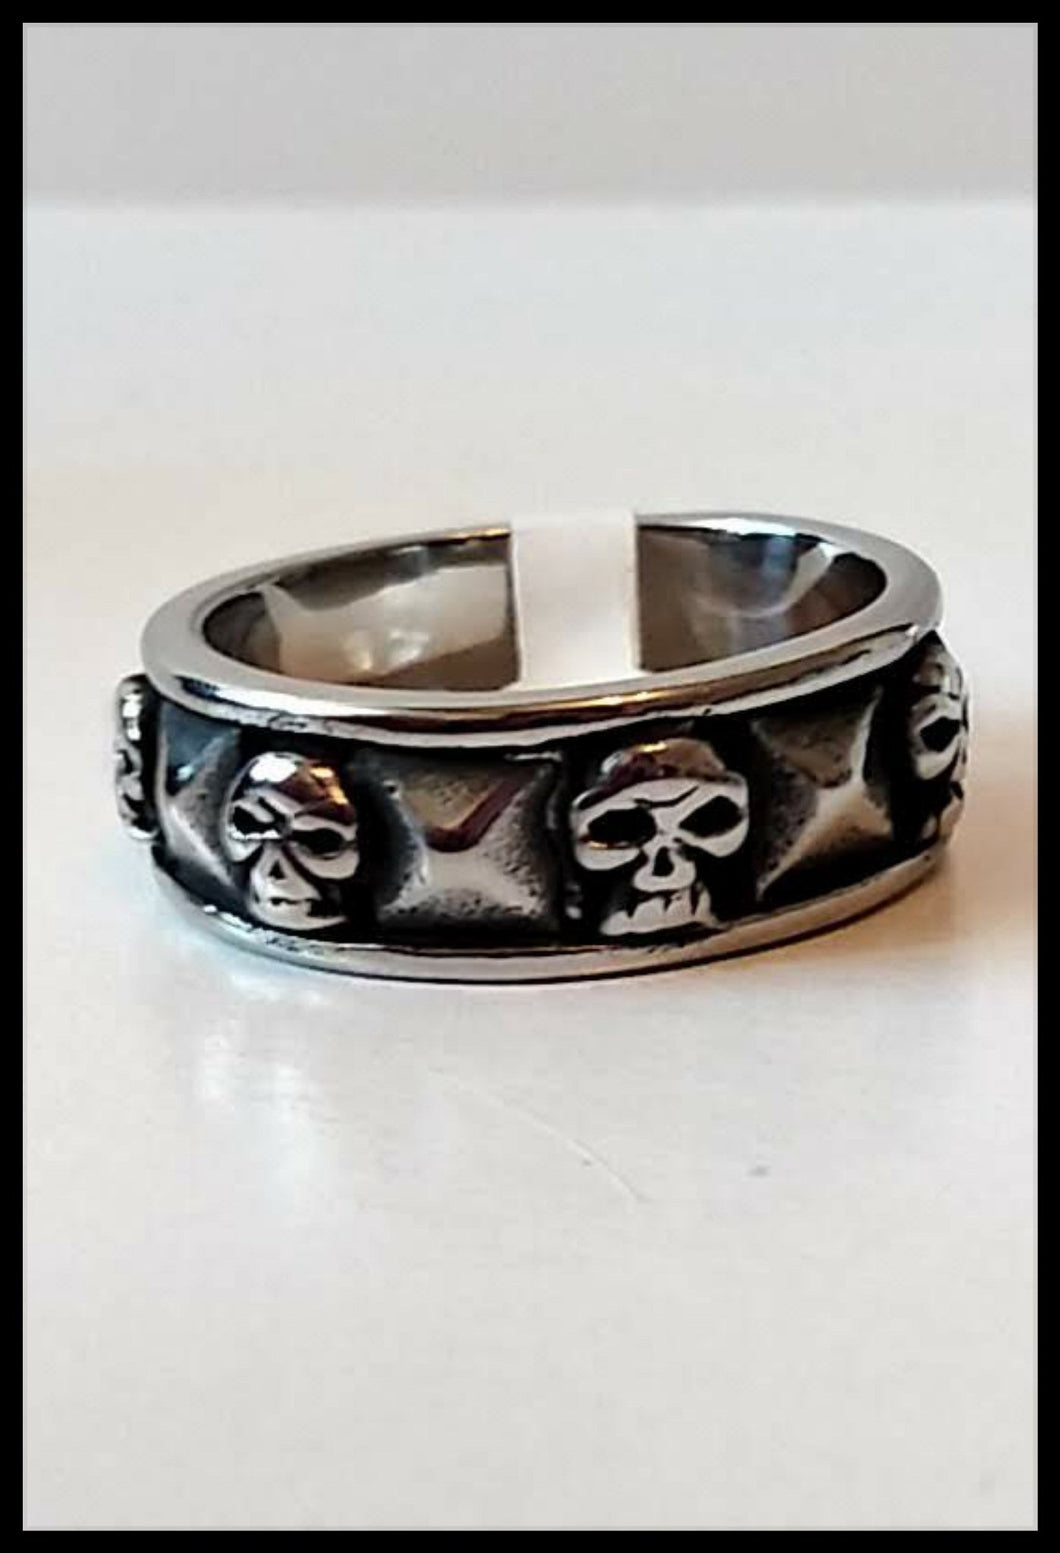 Mens Ring Small Skulls -Stainless Steel - The Bong Czar online Smokeshop